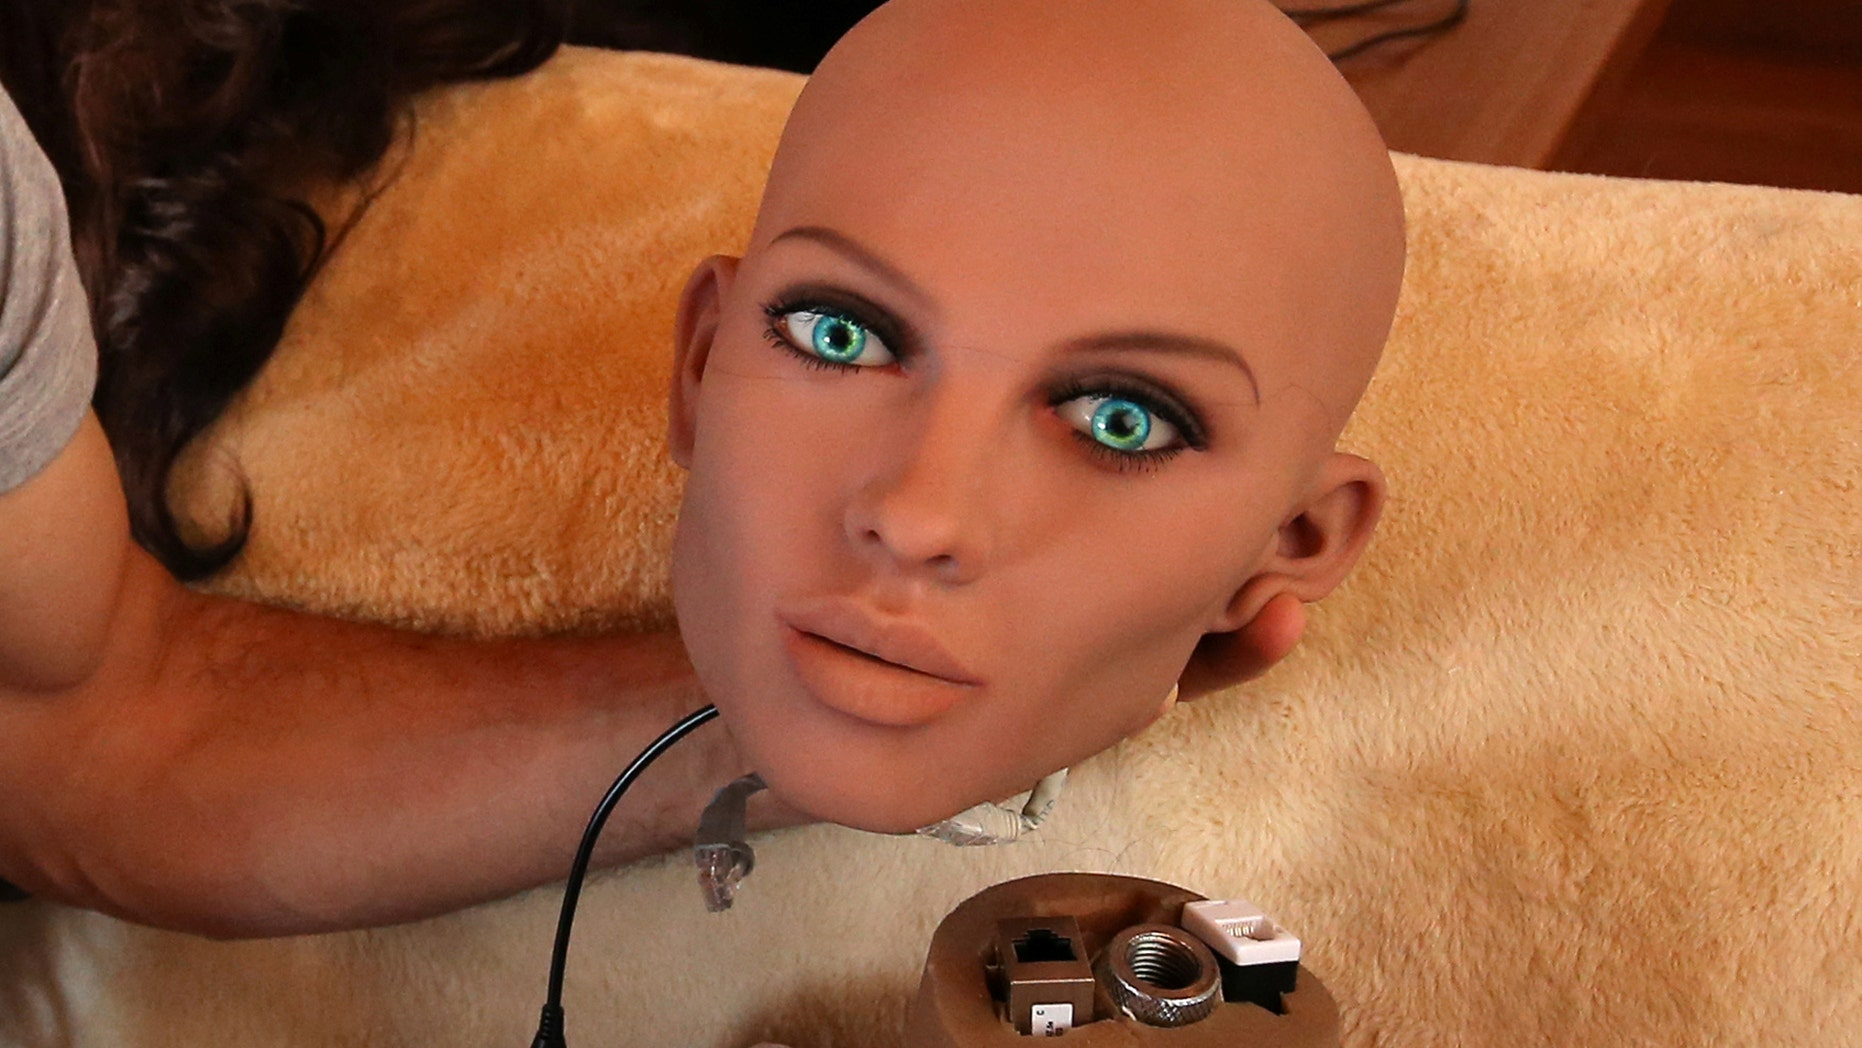 Sex robots 'will colonize Mars' says love-bot tester